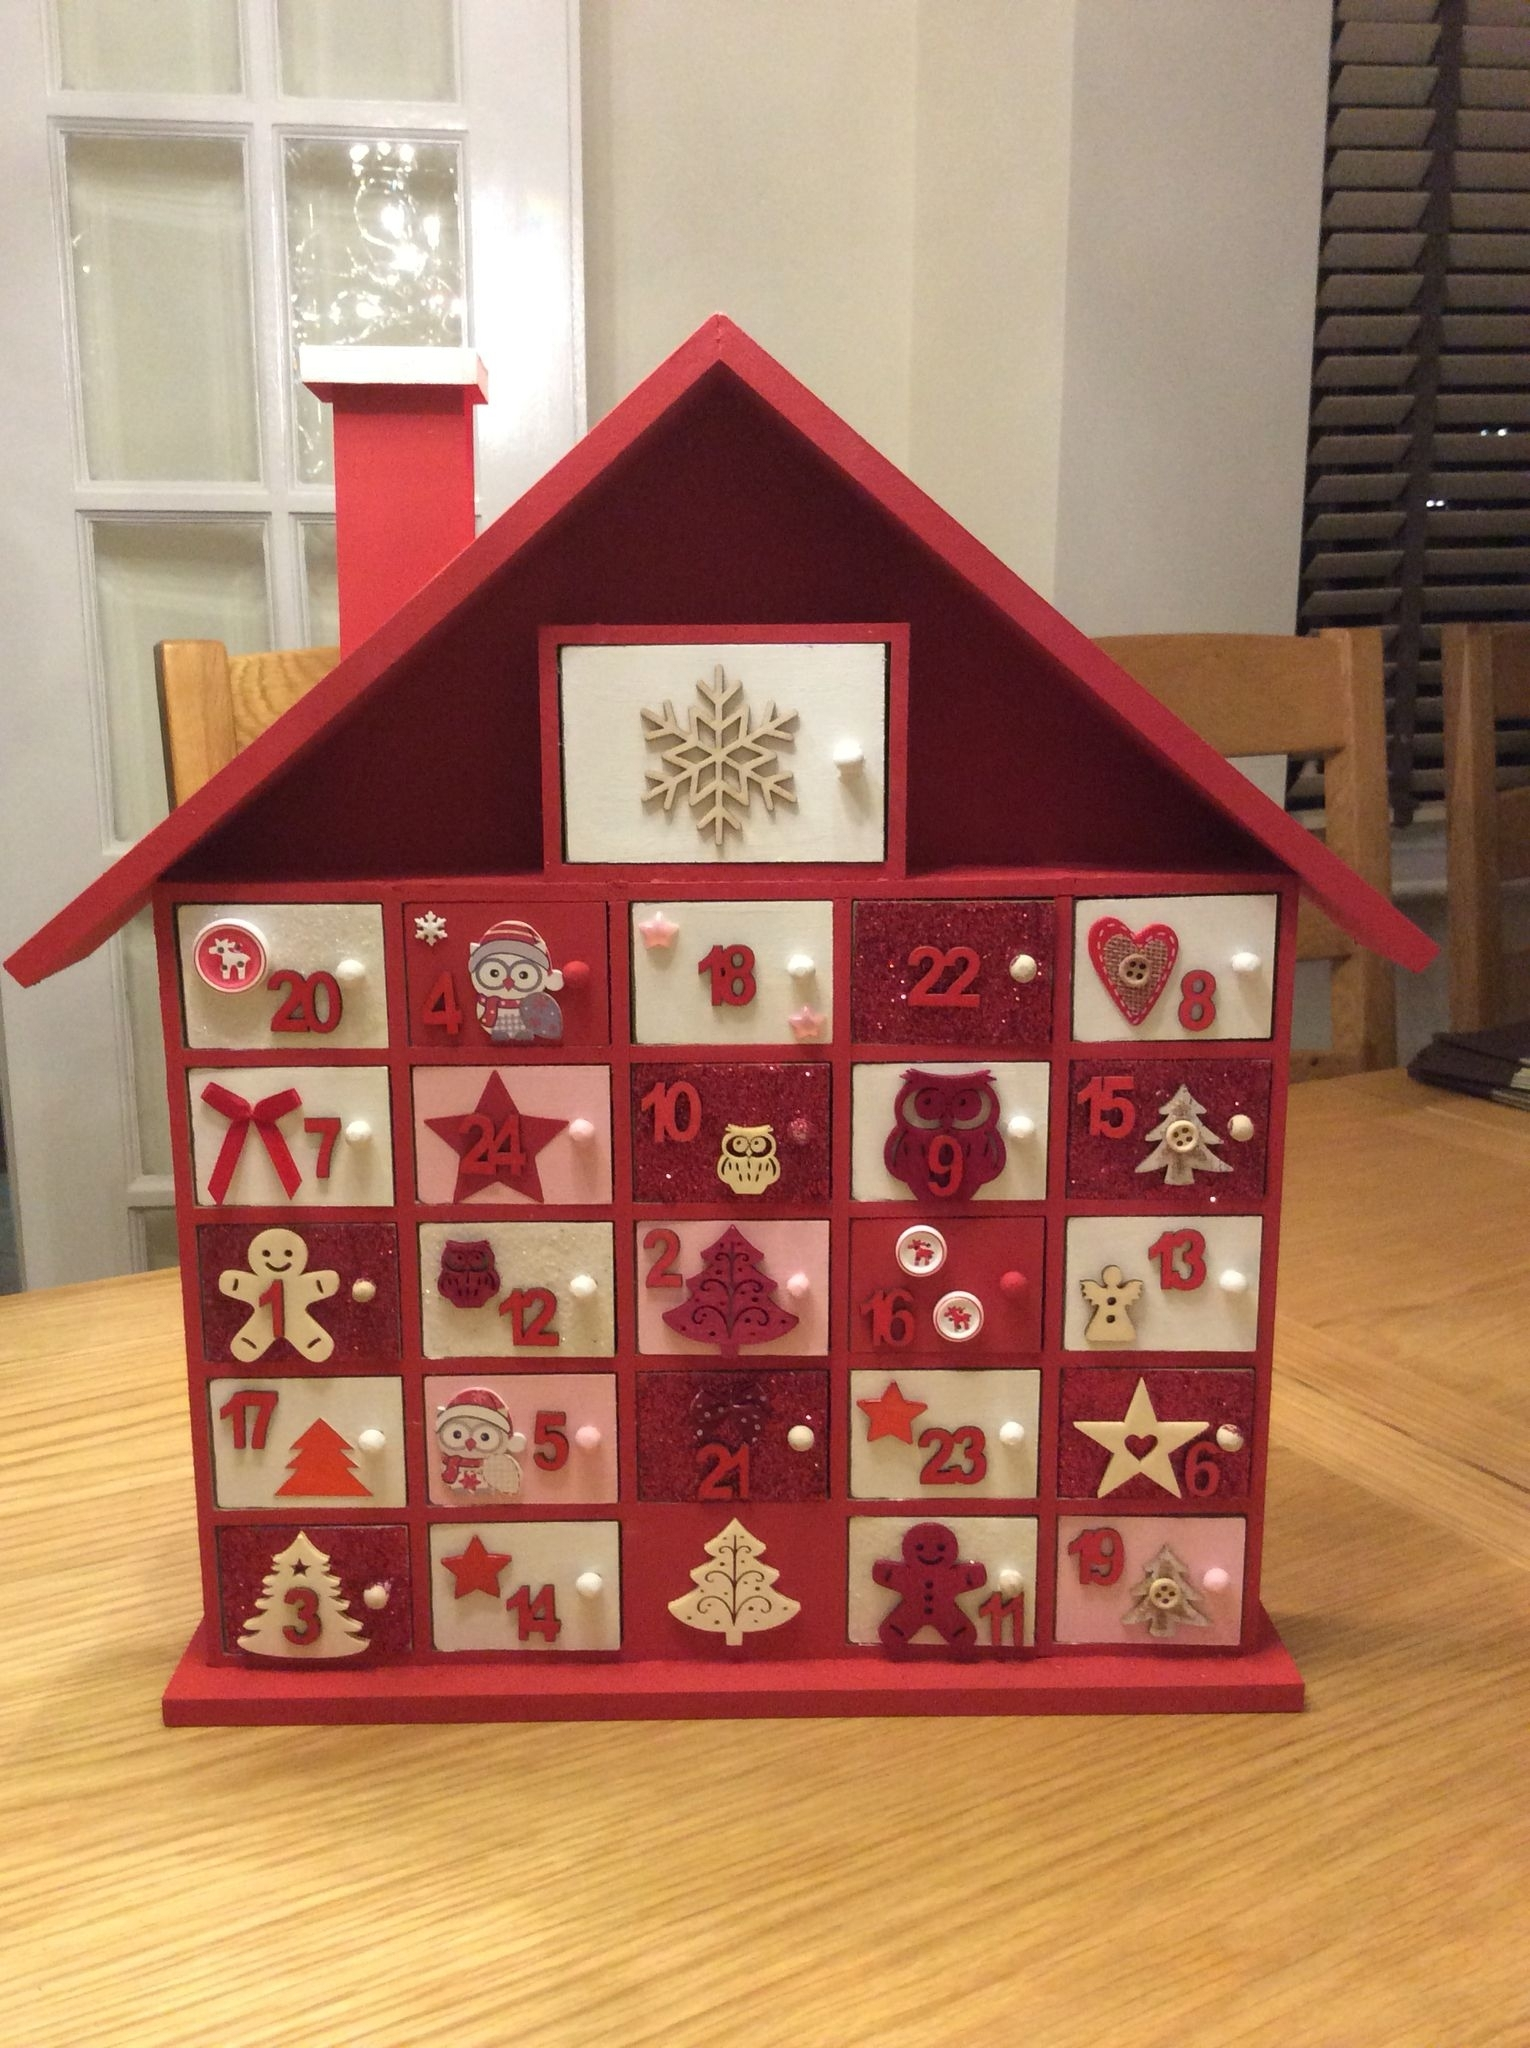 Hand Decorated Advent Calender Painted And Embellishments Added To with Wooden Advent Calendar With Lights And Boxes